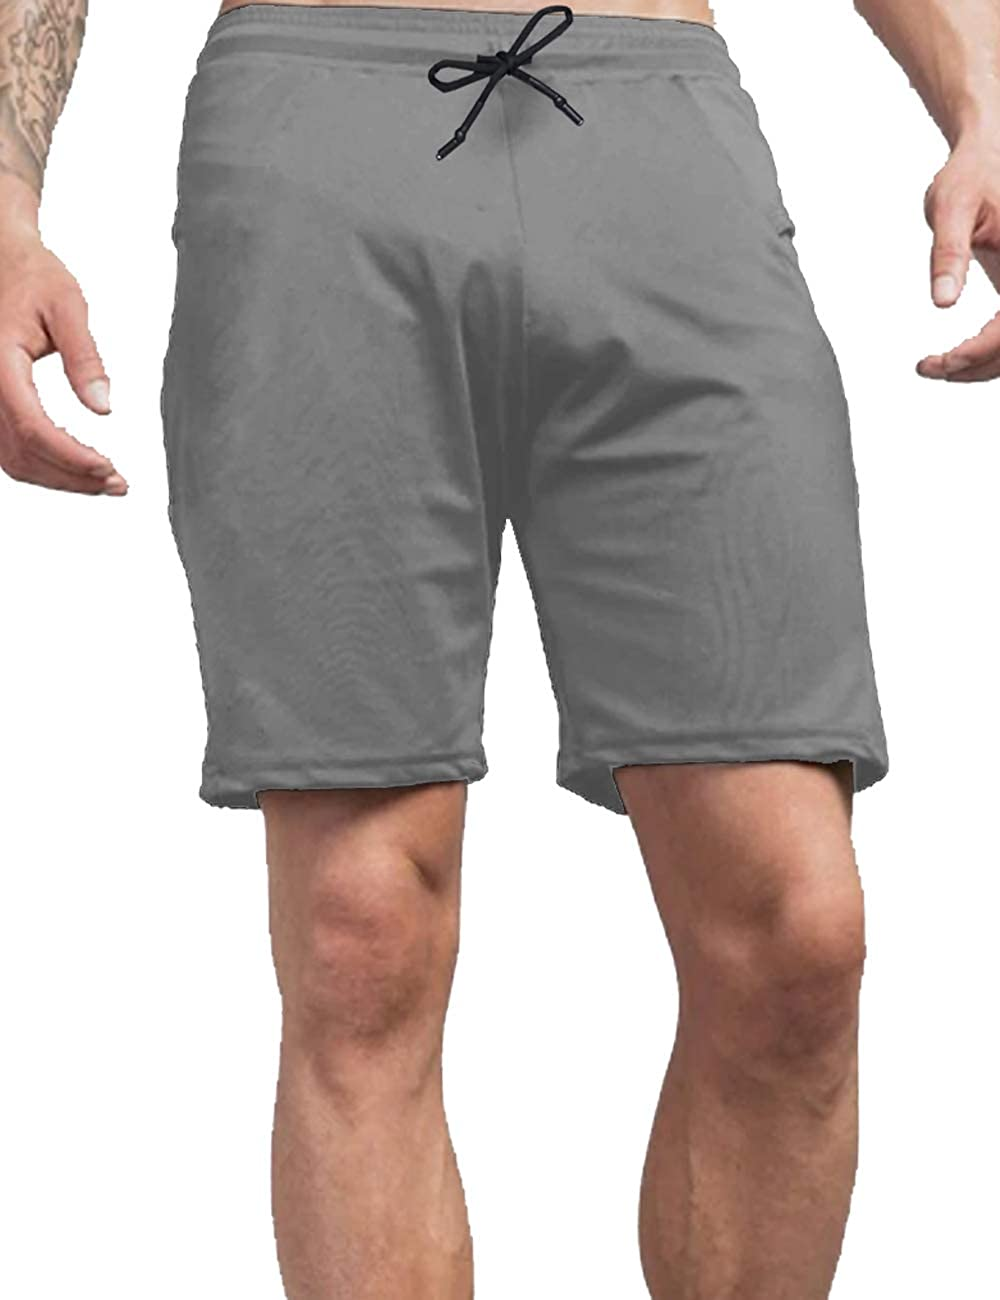 Men/'s Running Sports Shorts Breathable Moisture Wicking Gym Training Pants